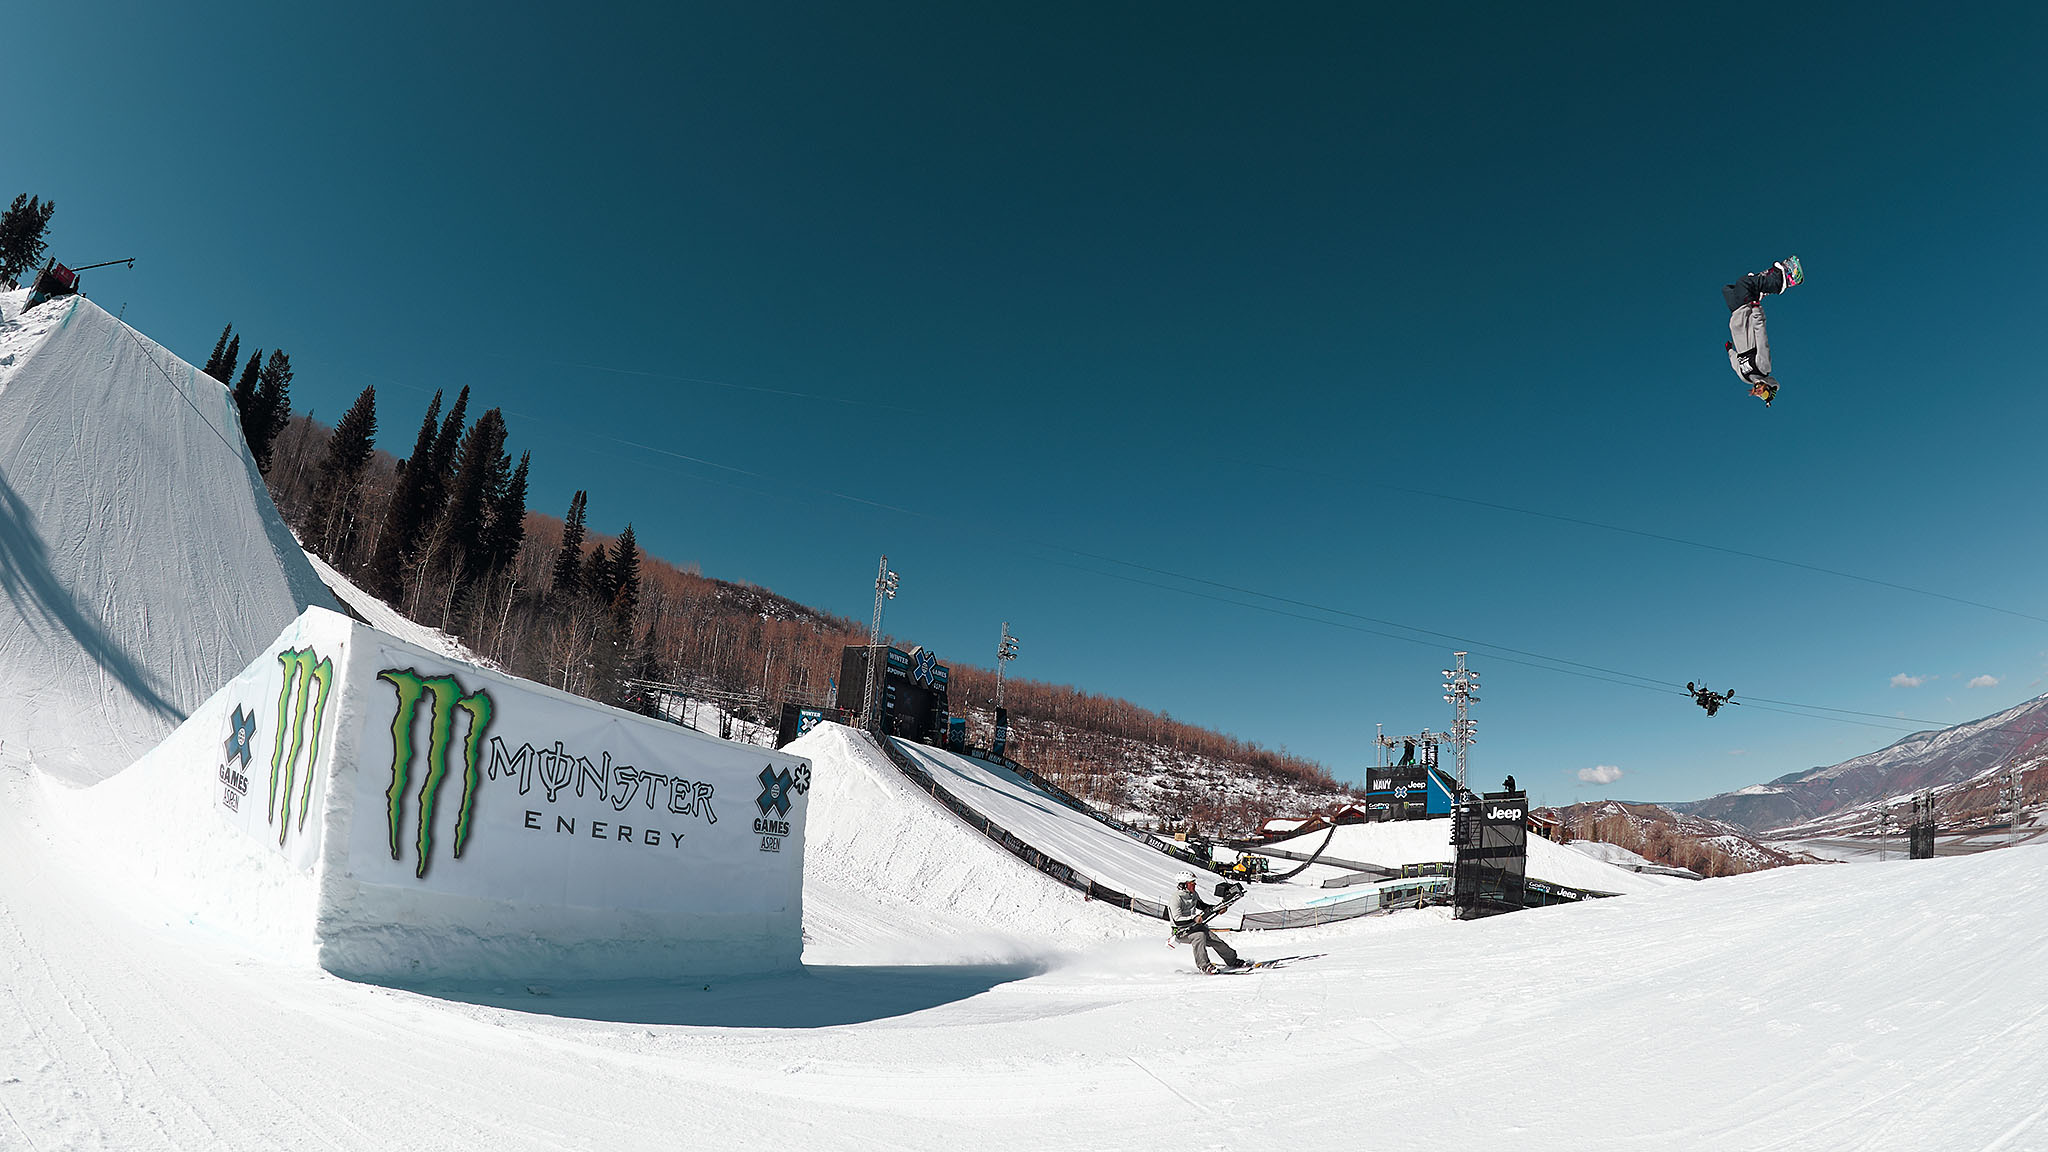 X Games Aspen 2014 got off to a strong start on Thursday, with nail-biting competitions in Men's Snowboard Slopestyle elims, Ski and SNB SuperPipe elims and Colten Moore winning Snowmobile Freestyle in honor of his brother, Caleb.